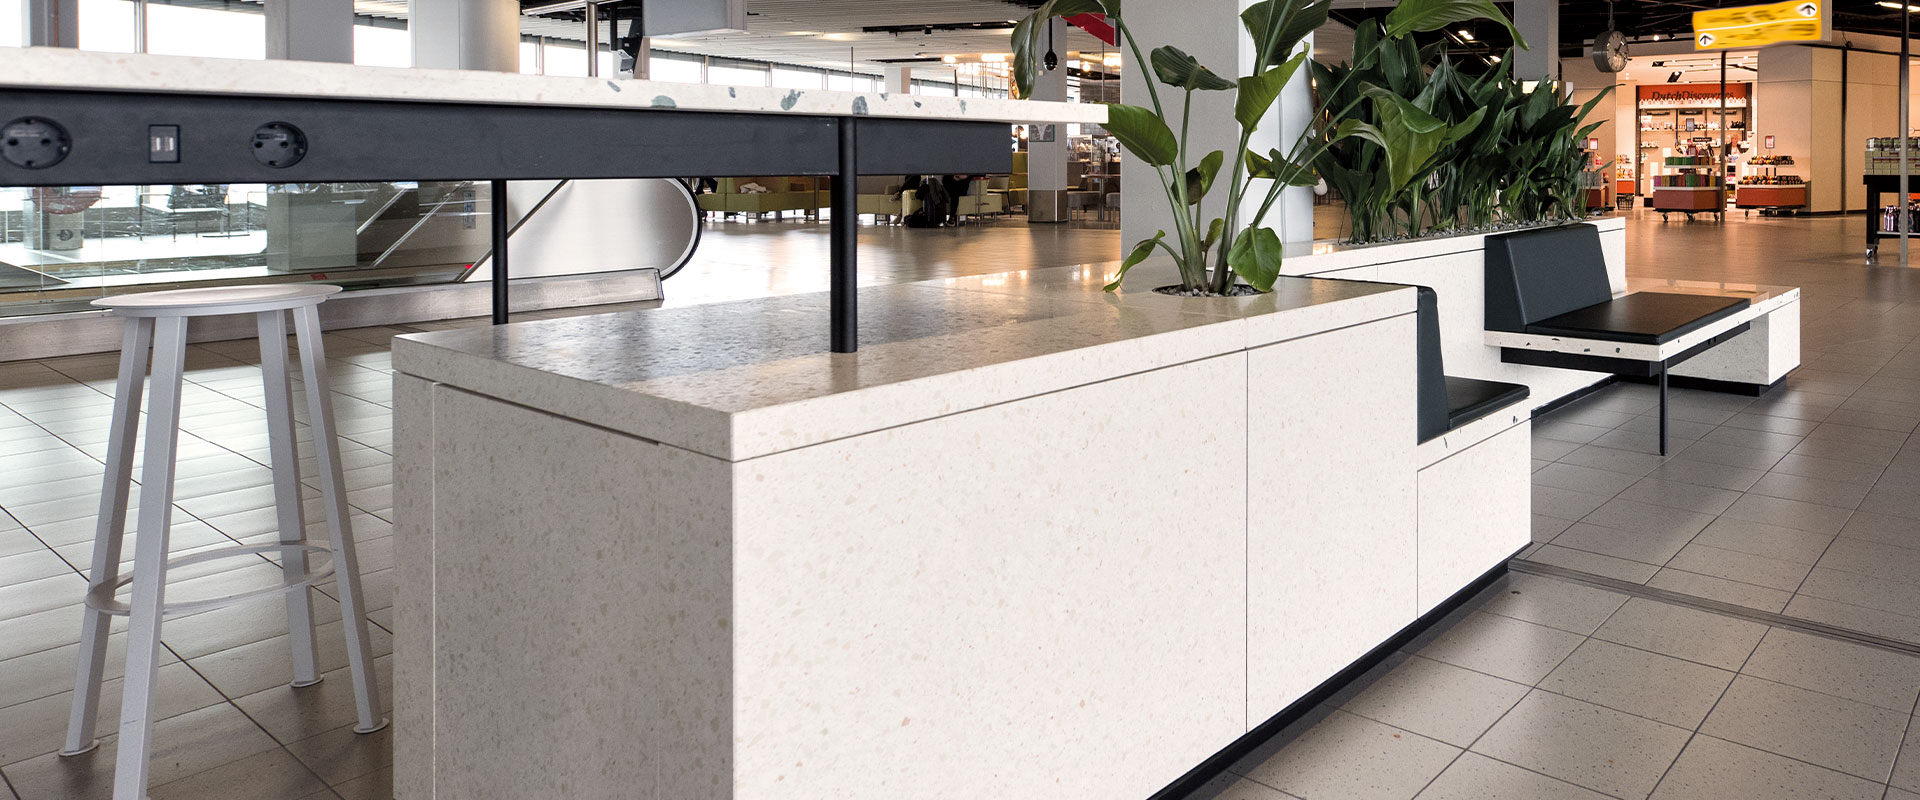 AGGLOTECH-progetto-schiphol-airport-slider-4